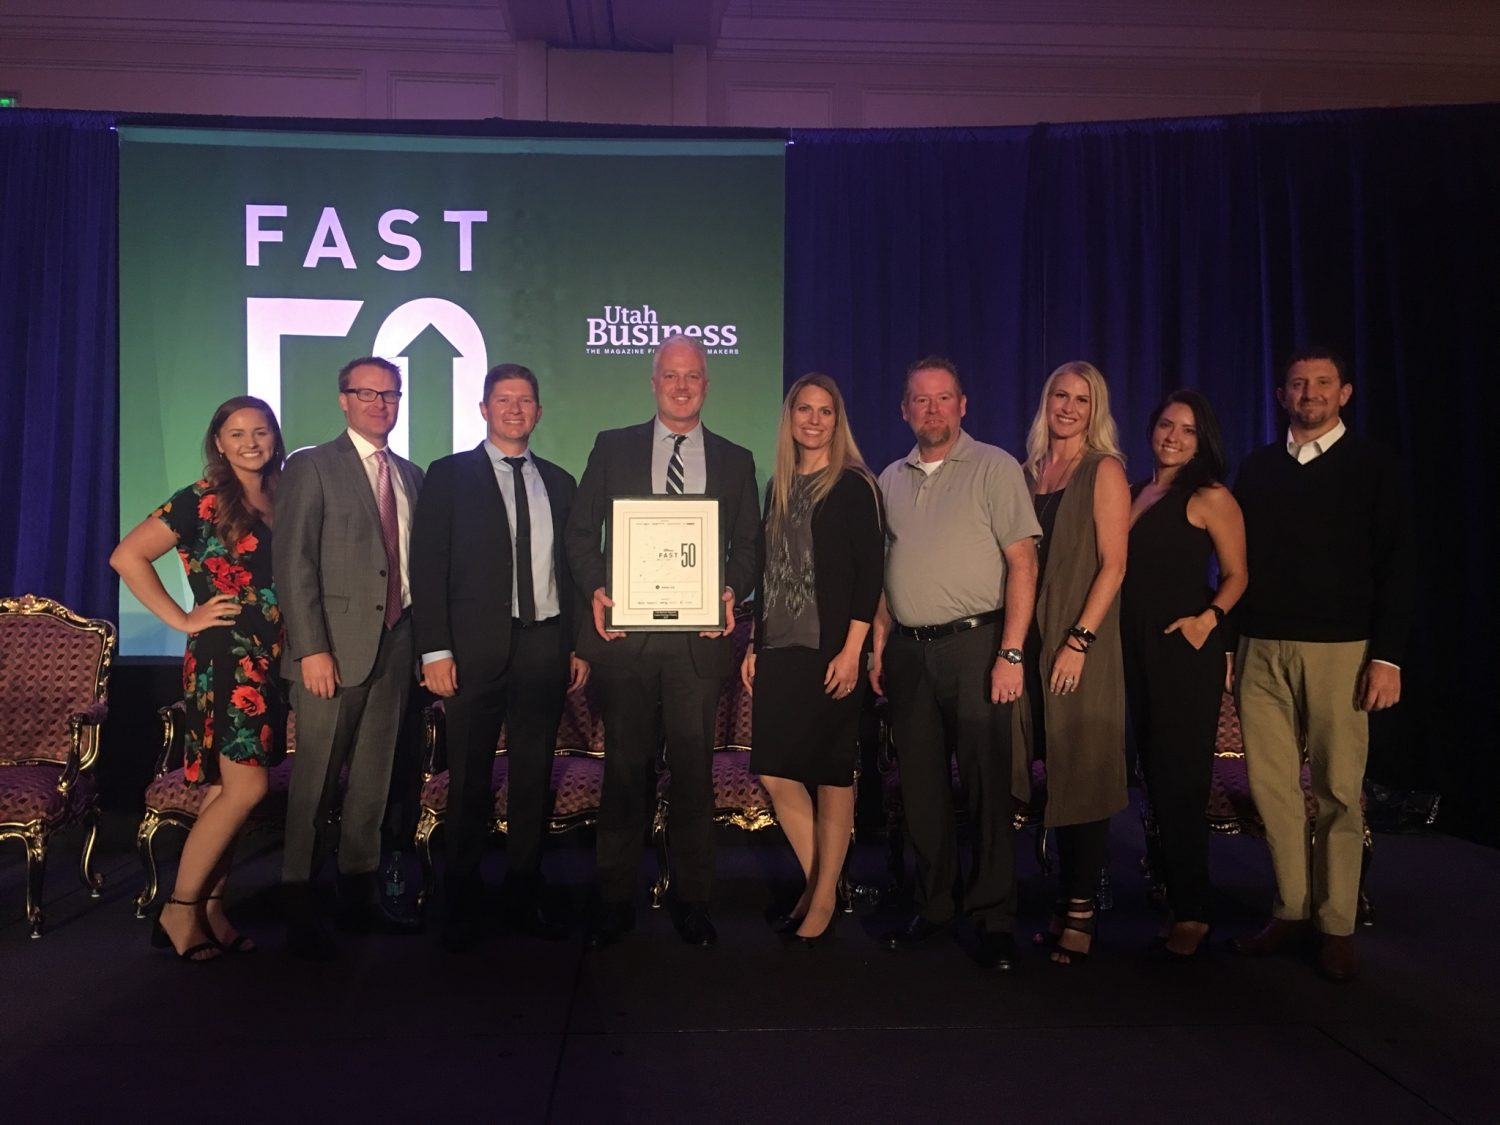 Zurixx recently claimed the coveted number-one spot on the Utah Business Fast 50 List. The company's success is due to their focus on quality.